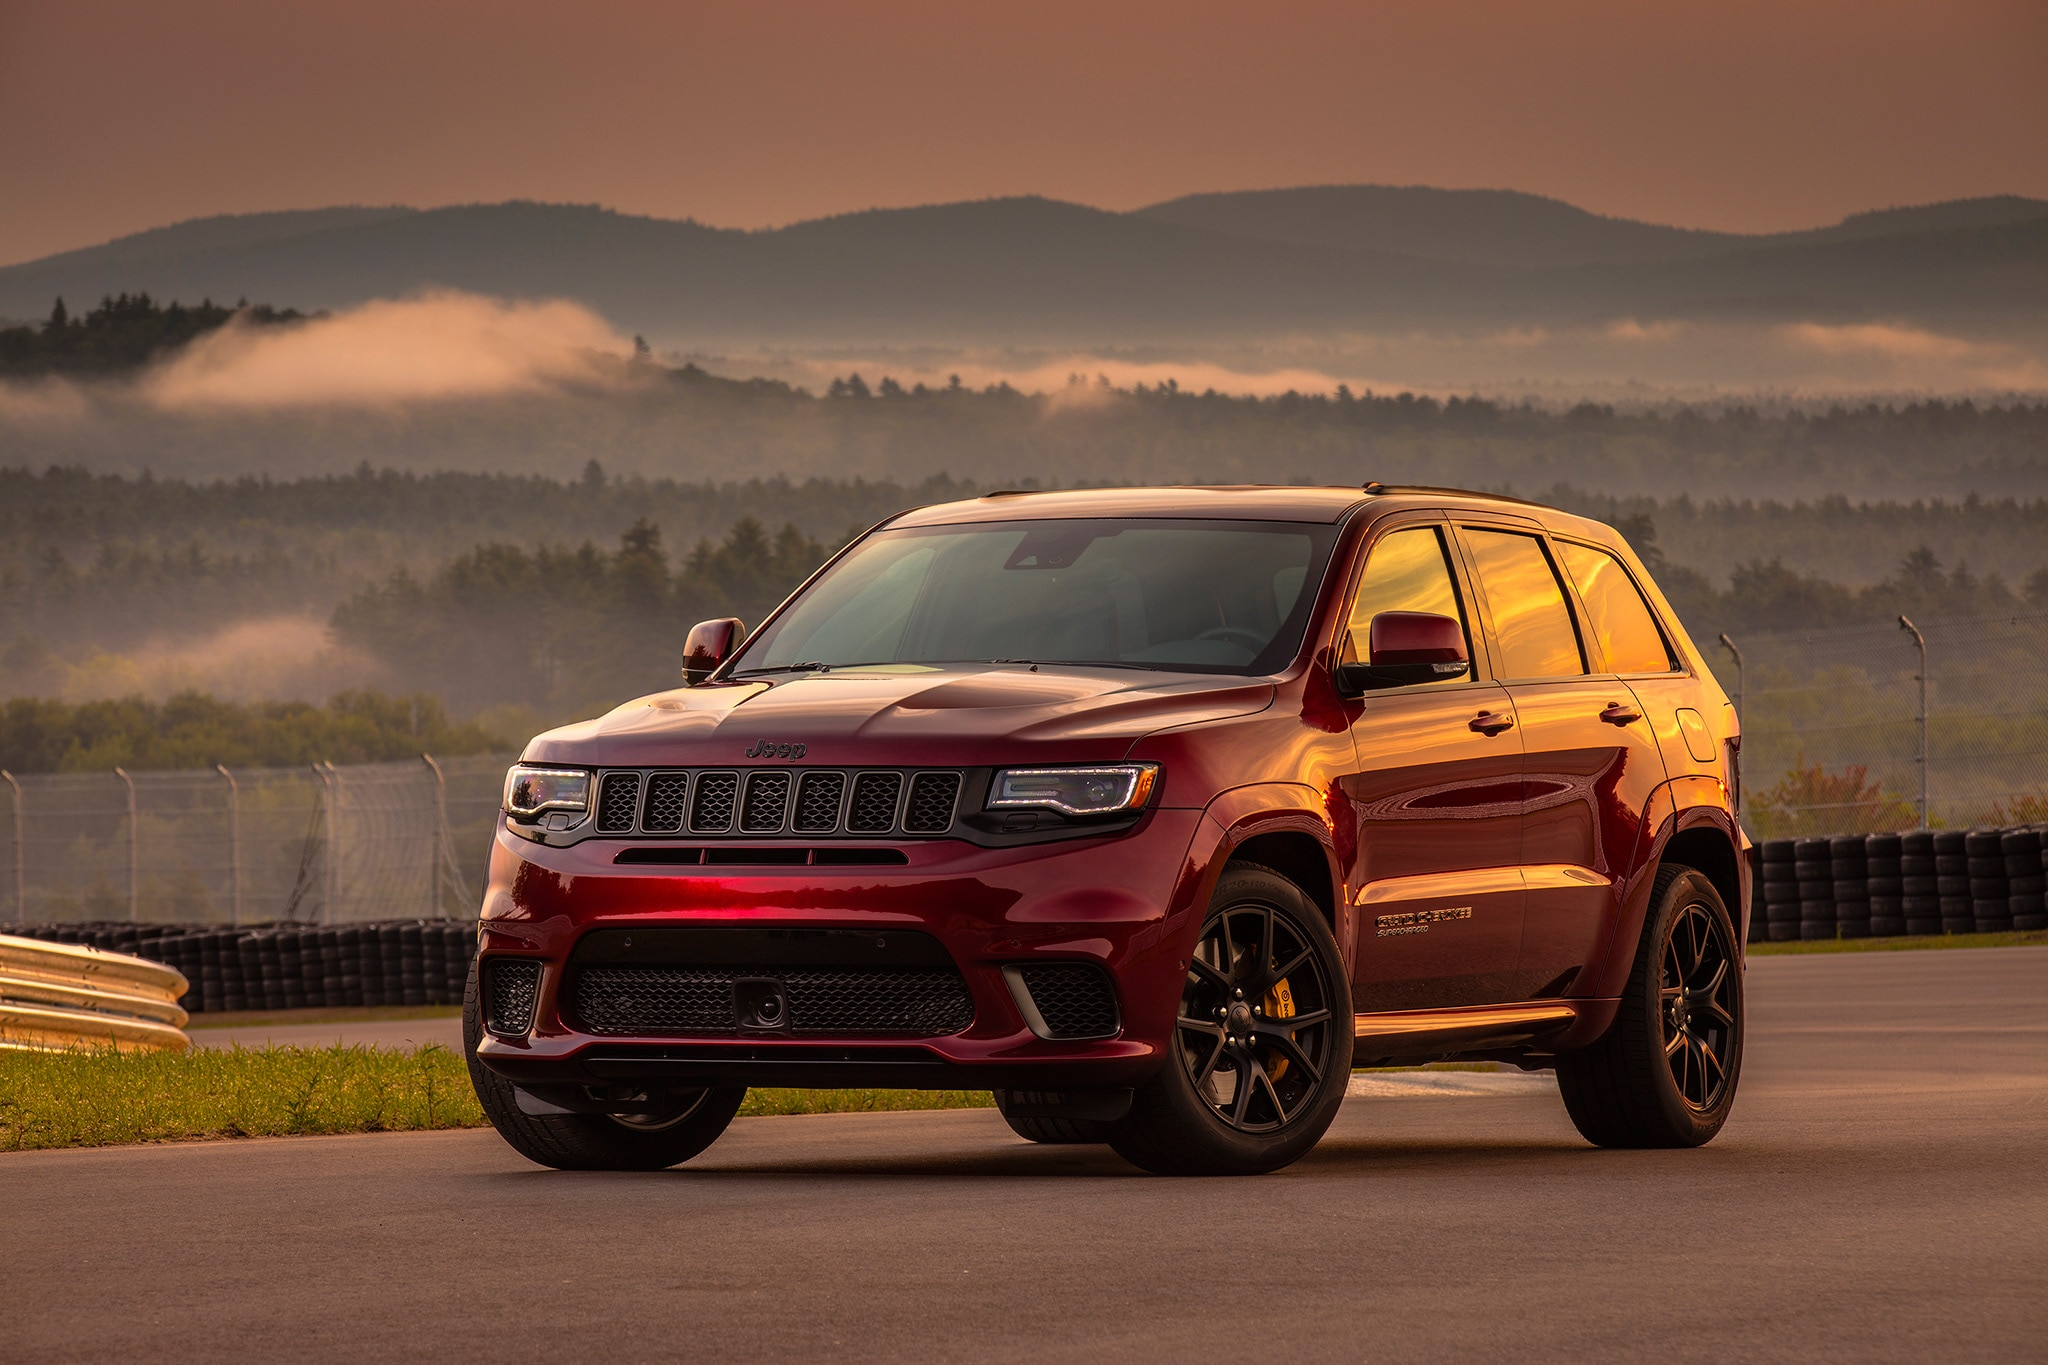 2018 jeep grand cherokee trackhawk first drive review. Black Bedroom Furniture Sets. Home Design Ideas